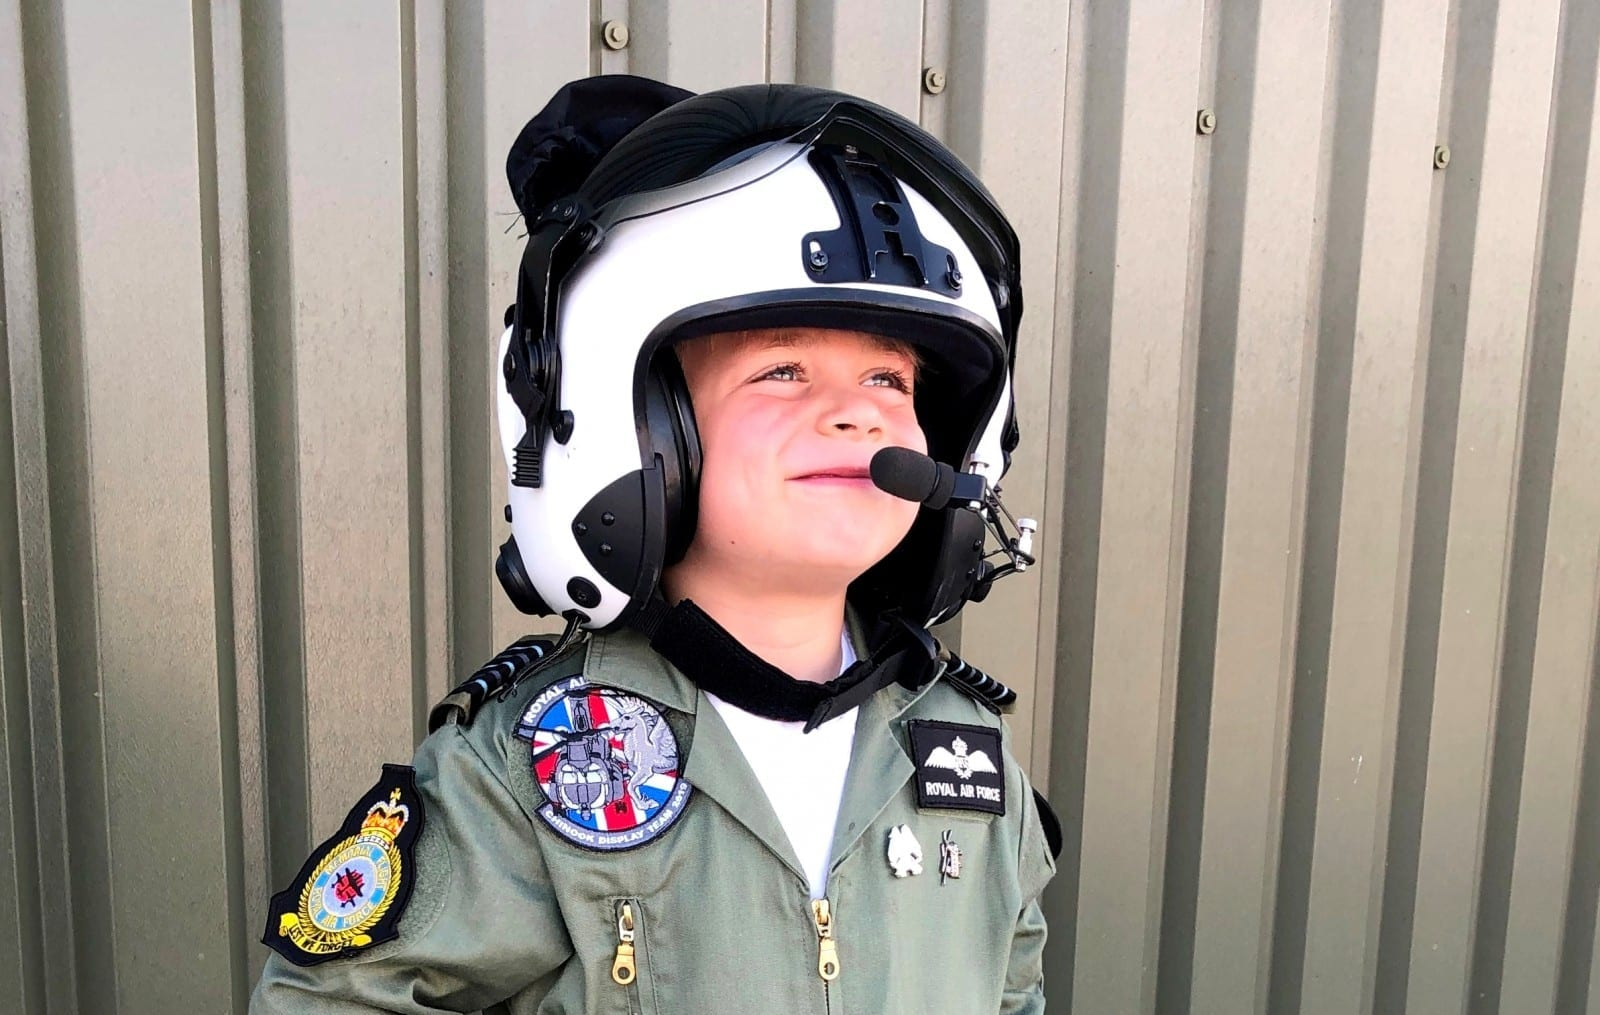 Adorable 'Plane Mad' Five Year Old Has Donned A Flight Suit And Climbed A SIX-MILE Mountain To Raise Money For Injured Pilots